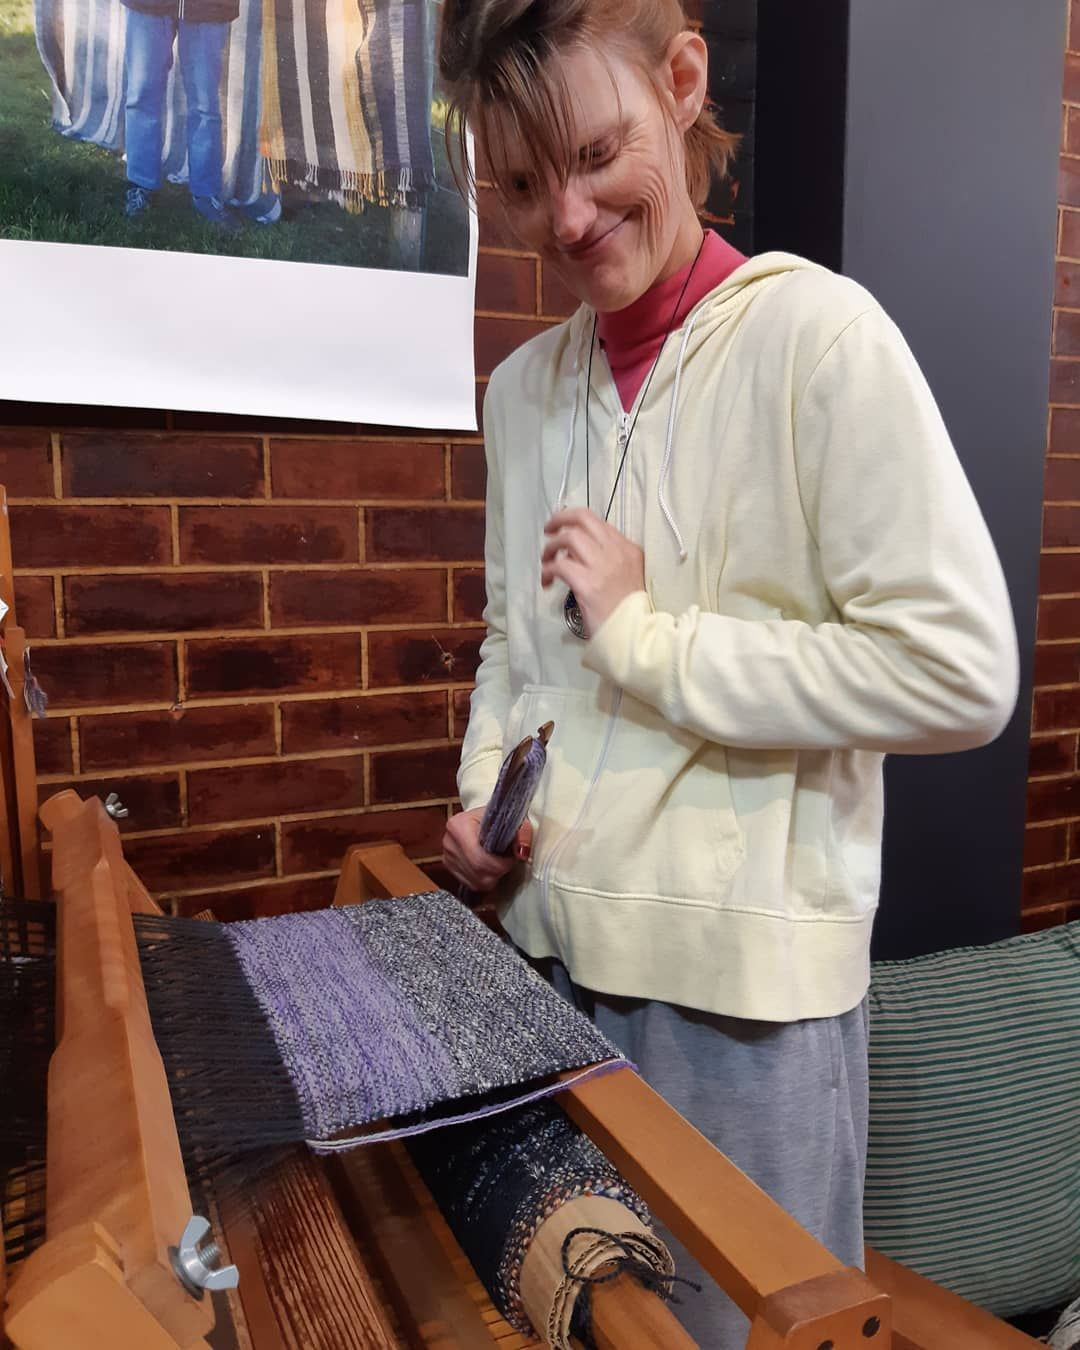 Productive day in the Rose Weavery. Tania is showing us her work, both the weaving of it and a finished piece from last year.  #taniasweaving #hohepaweaving  #handmade #nzmade #woolen #weaving #localcraftsmanship #weaversofinstagram #localtalent #crafts #creative #handwovenscarf #